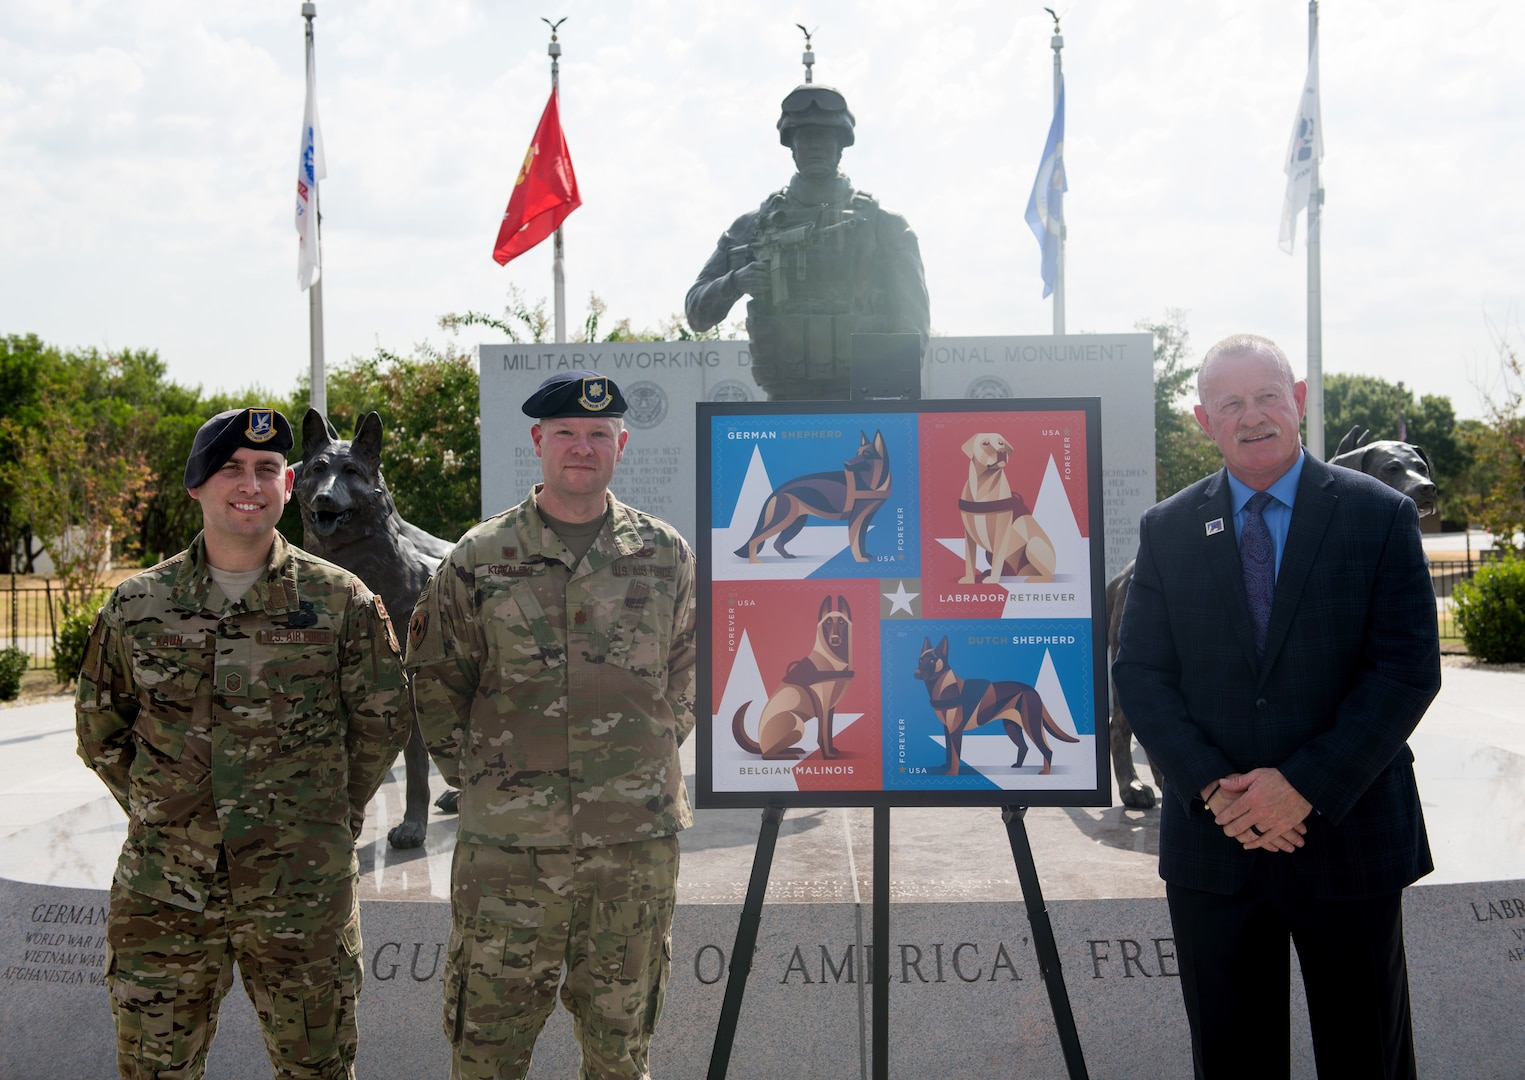 Master Sgt. Steven Kaun (left), USAF Military Working Dog program manager, Maj. Matthew Kowalski, 341st Training Squadron commander, and Robert Carr, Post Master of San Antonio, pose for a photo during the Military Working Dog Stamp ceremony Aug. 15 at Joint Base San Antonio-Medina Annex. The stamp honors dogs who have served in the U.S. armed forces since the U.S. Army created the War Dog Program K-9 Corps and began training man's best friend in March 1942.